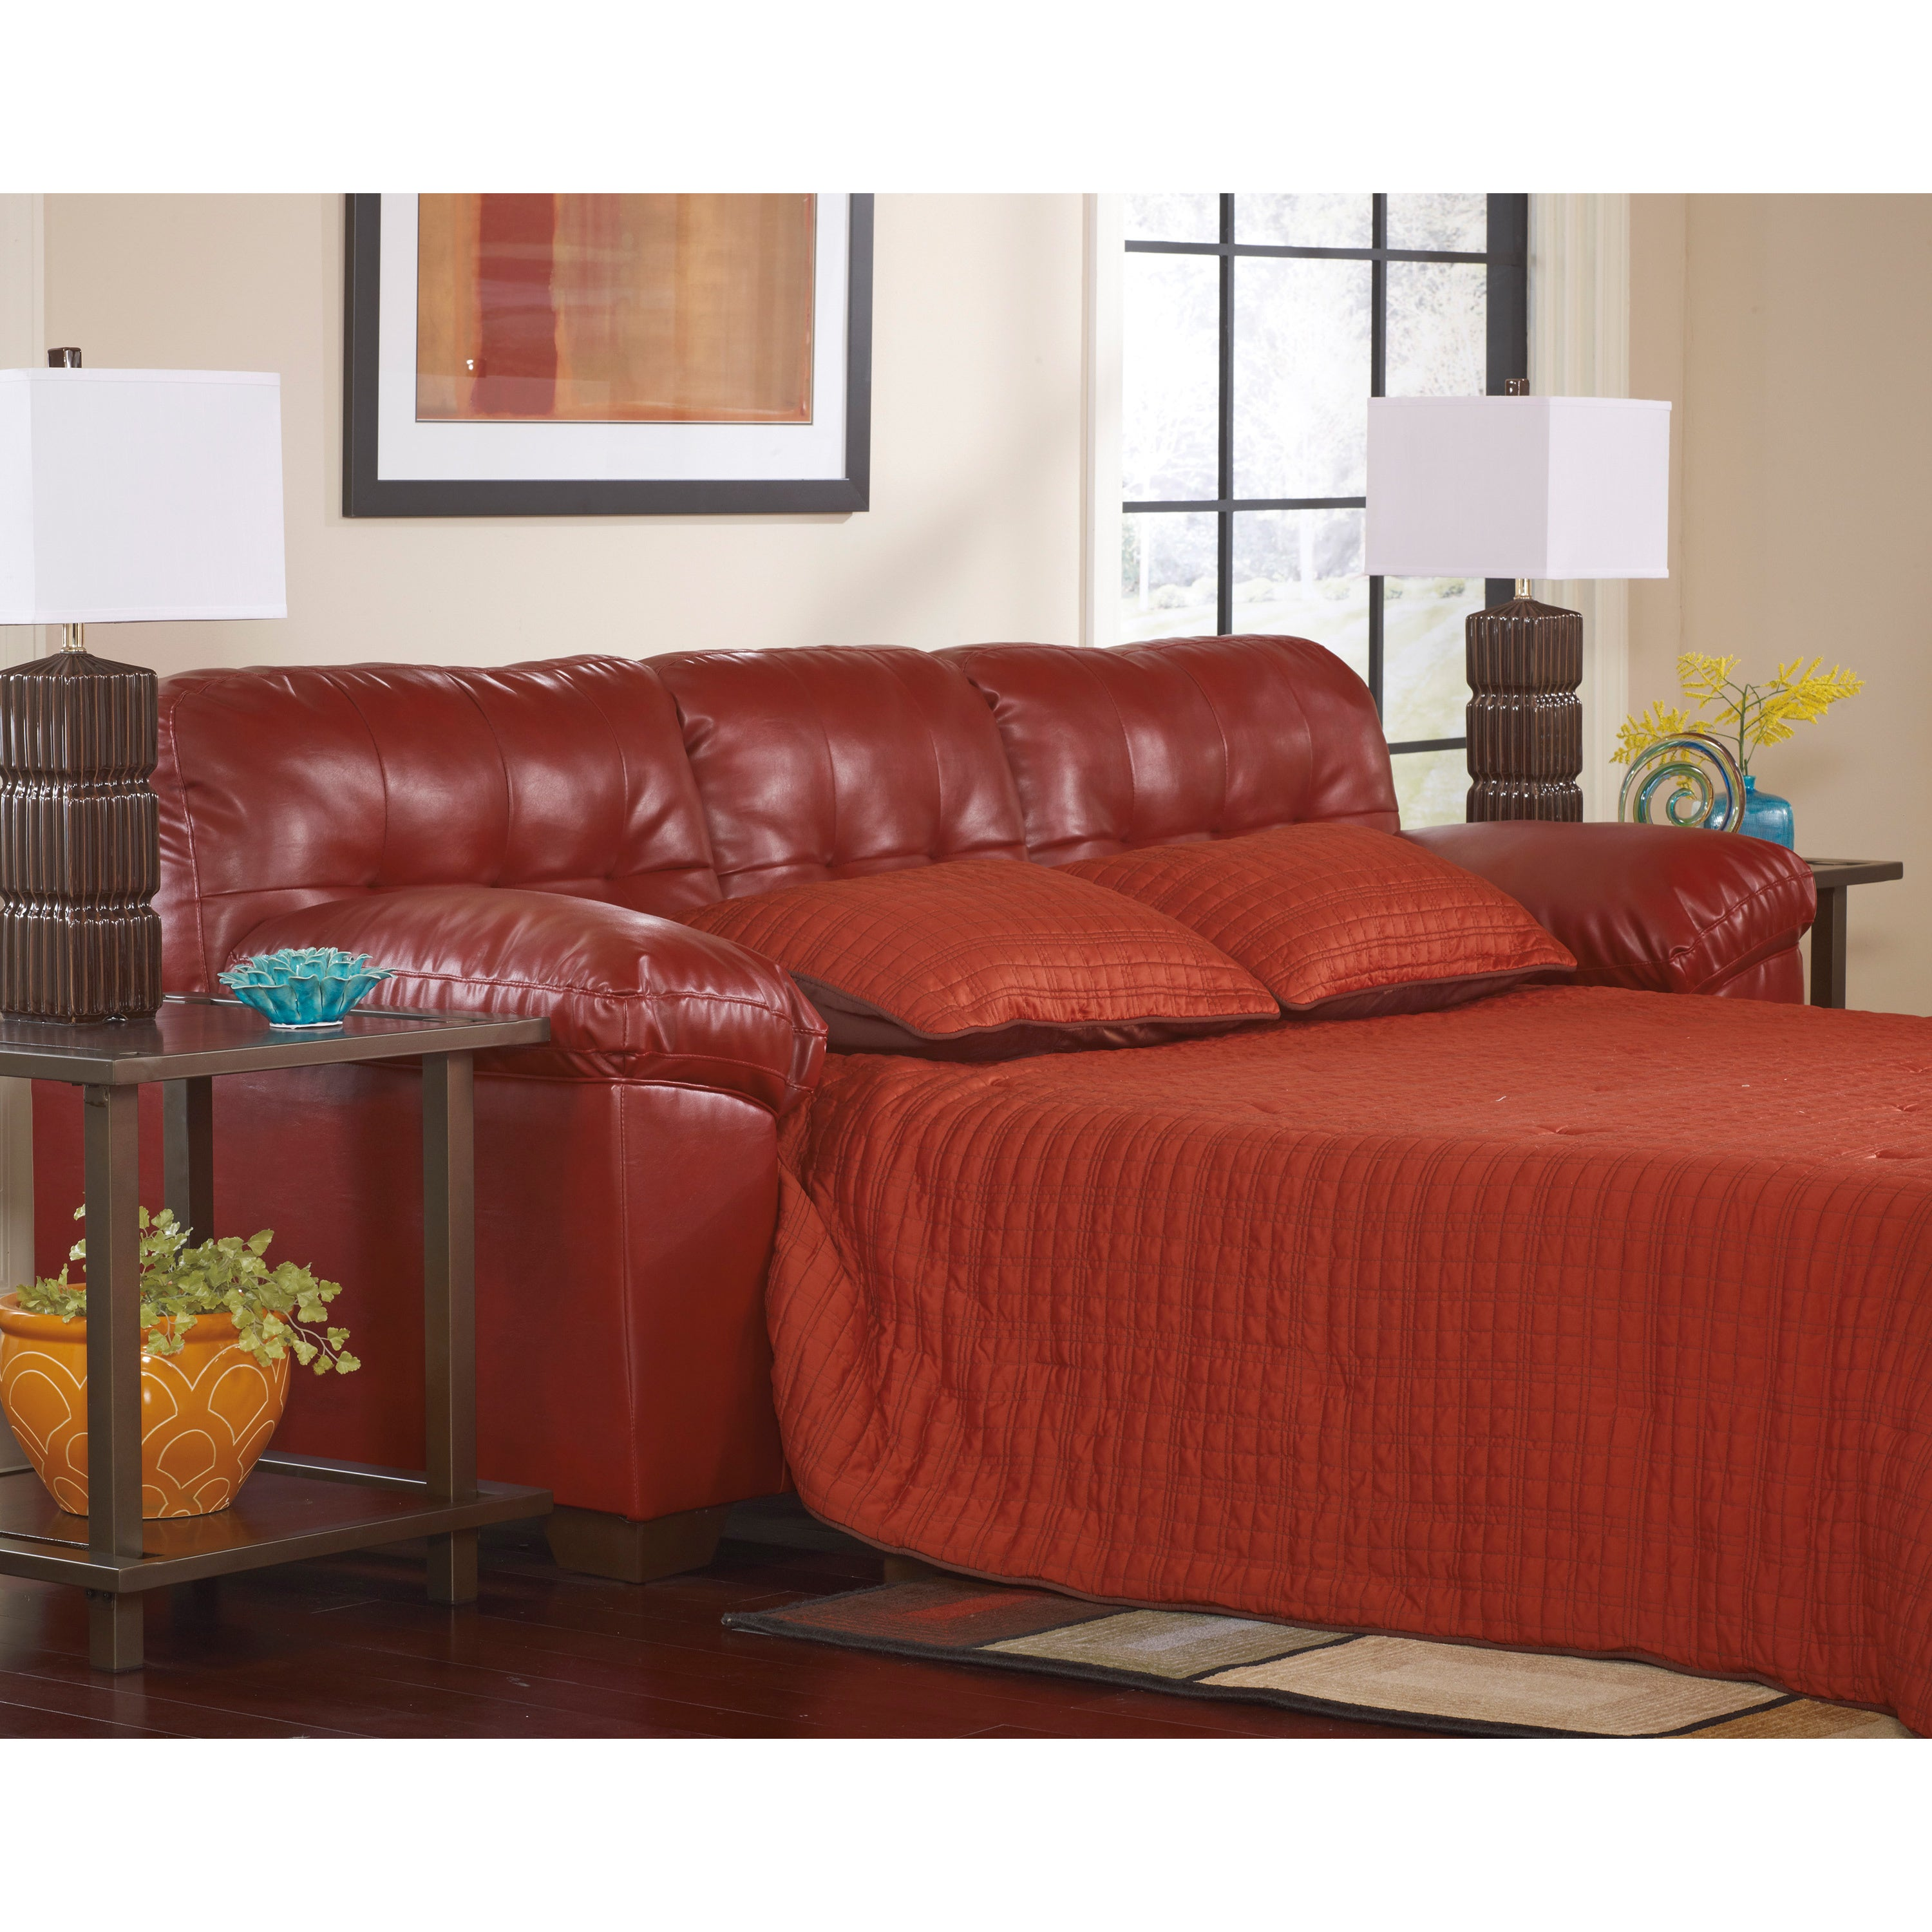 Signature Designs By Ashley U0027Allistonu0027 Queen Salsa Red DuraBlend Sofa  Sleeper   Free Shipping Today   Overstock   16621247